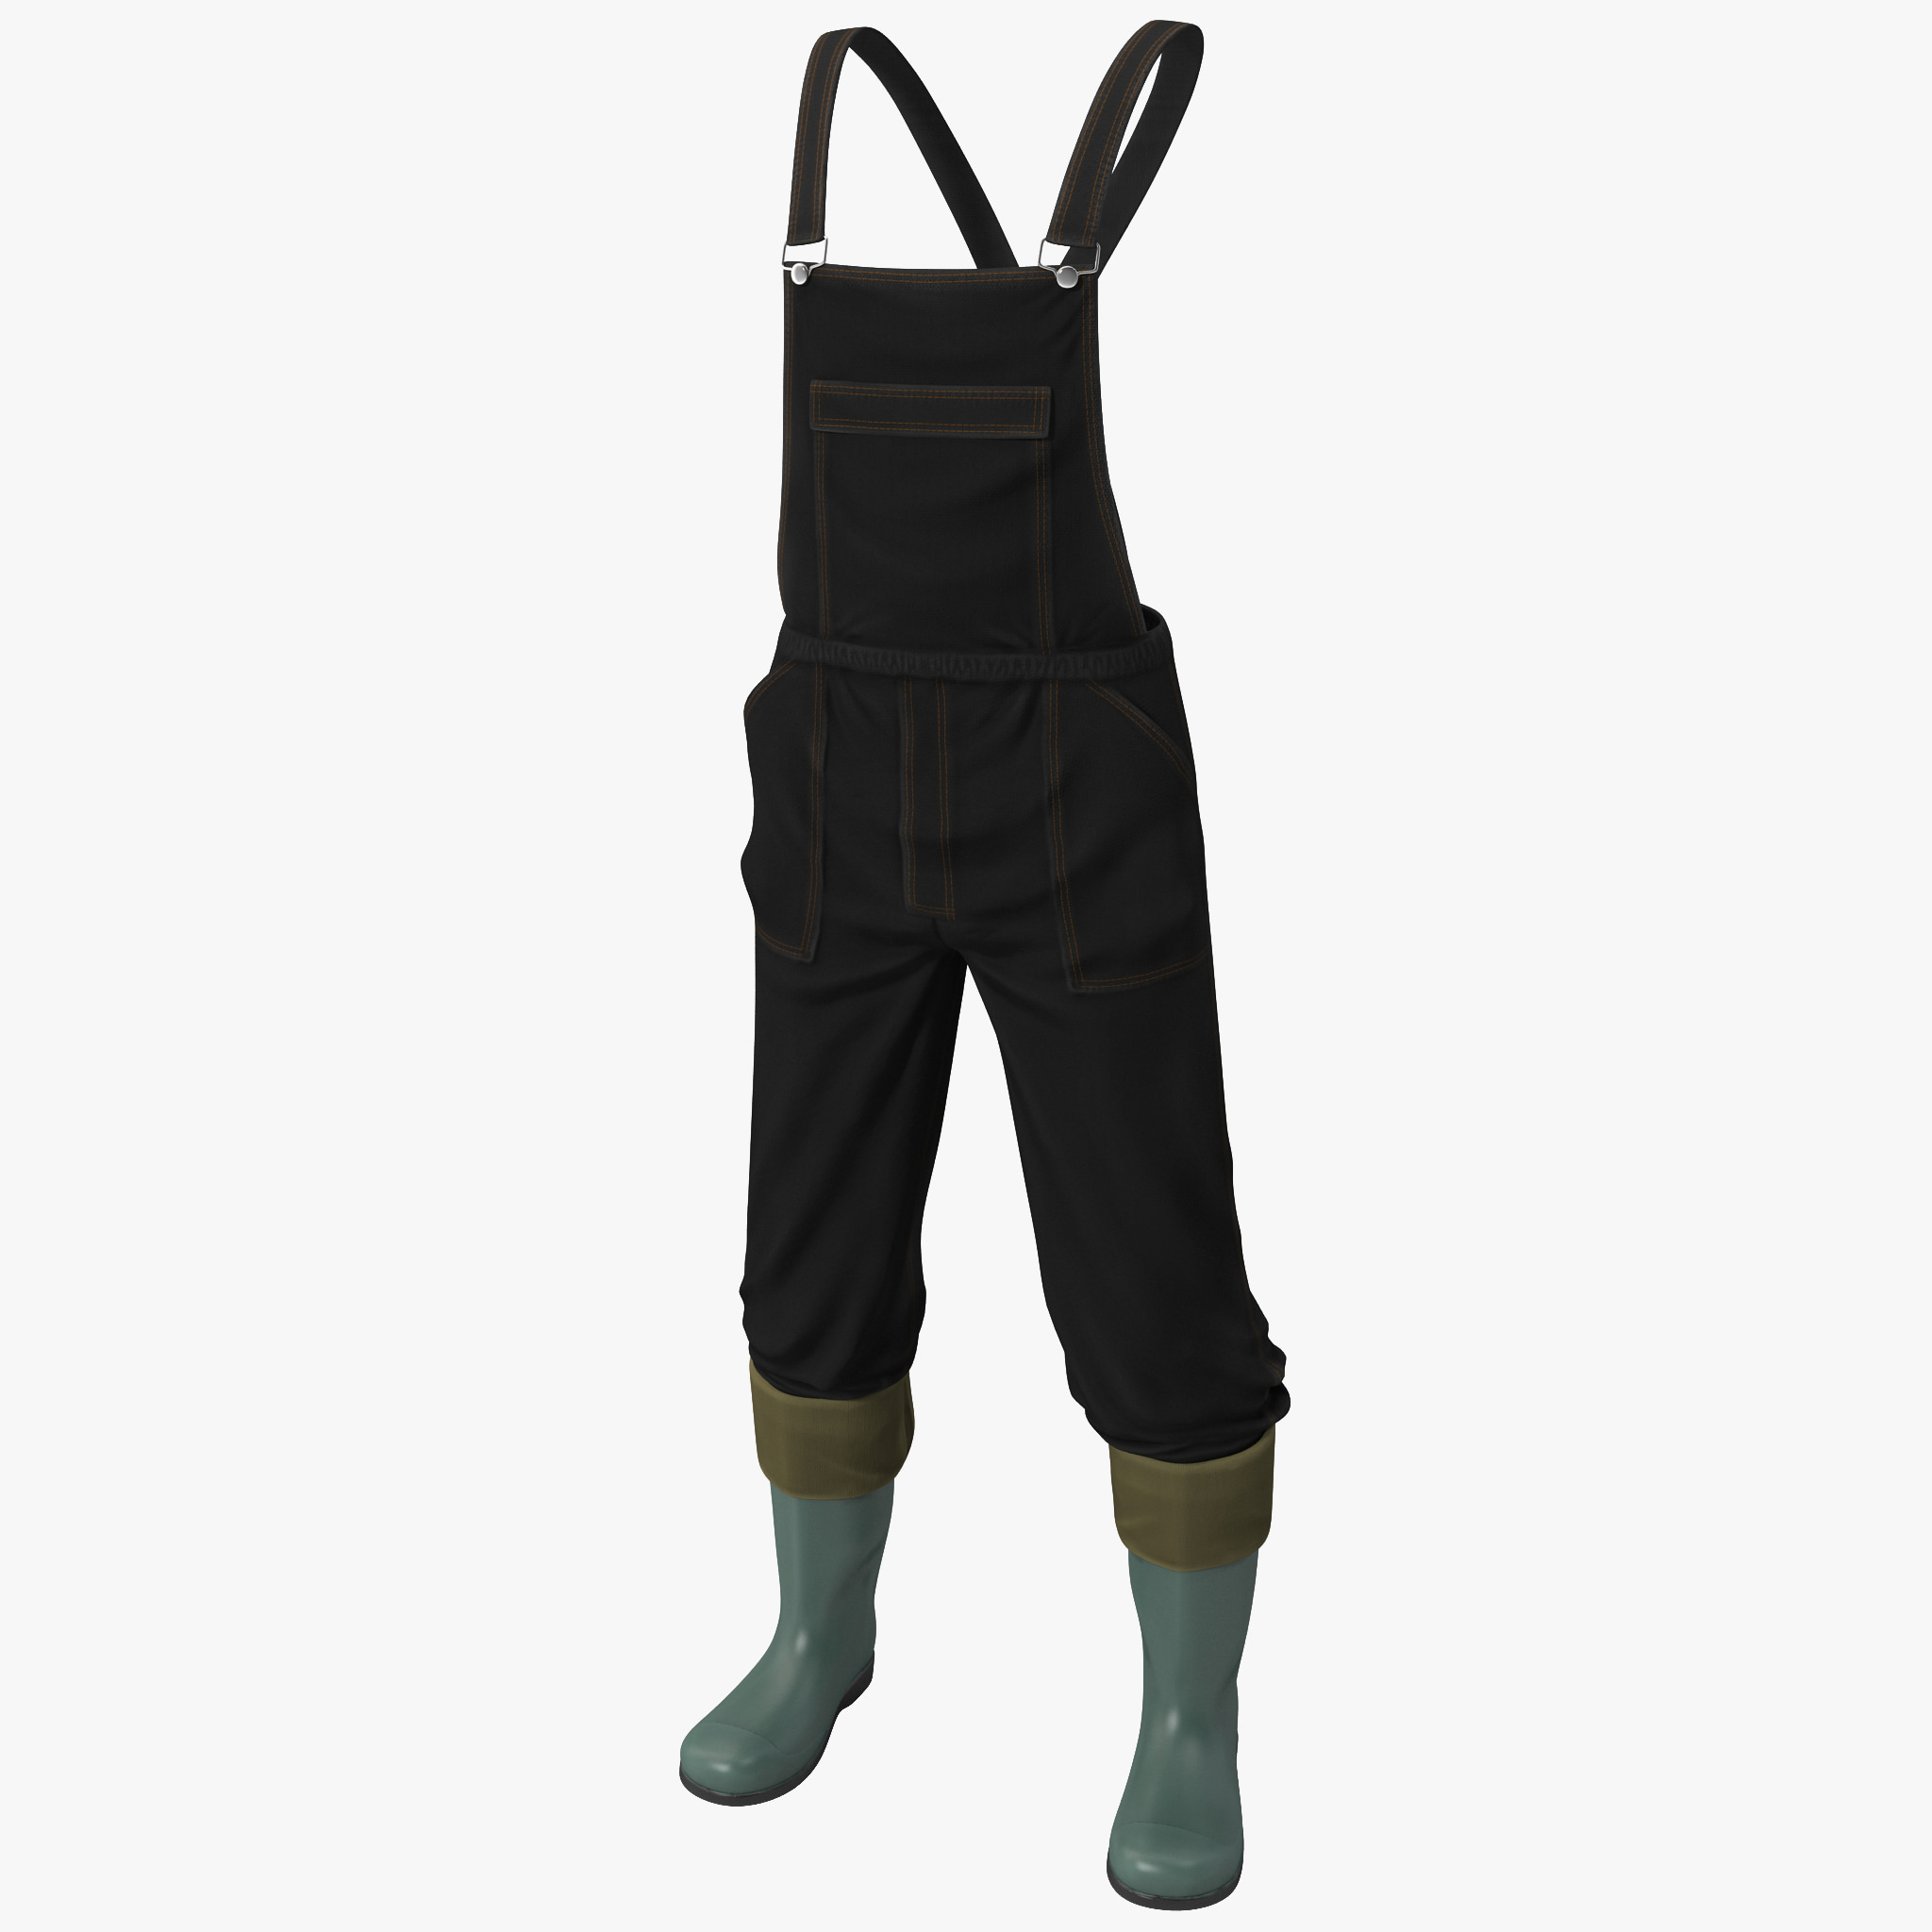 Overalls Jean and Boots_1.jpg